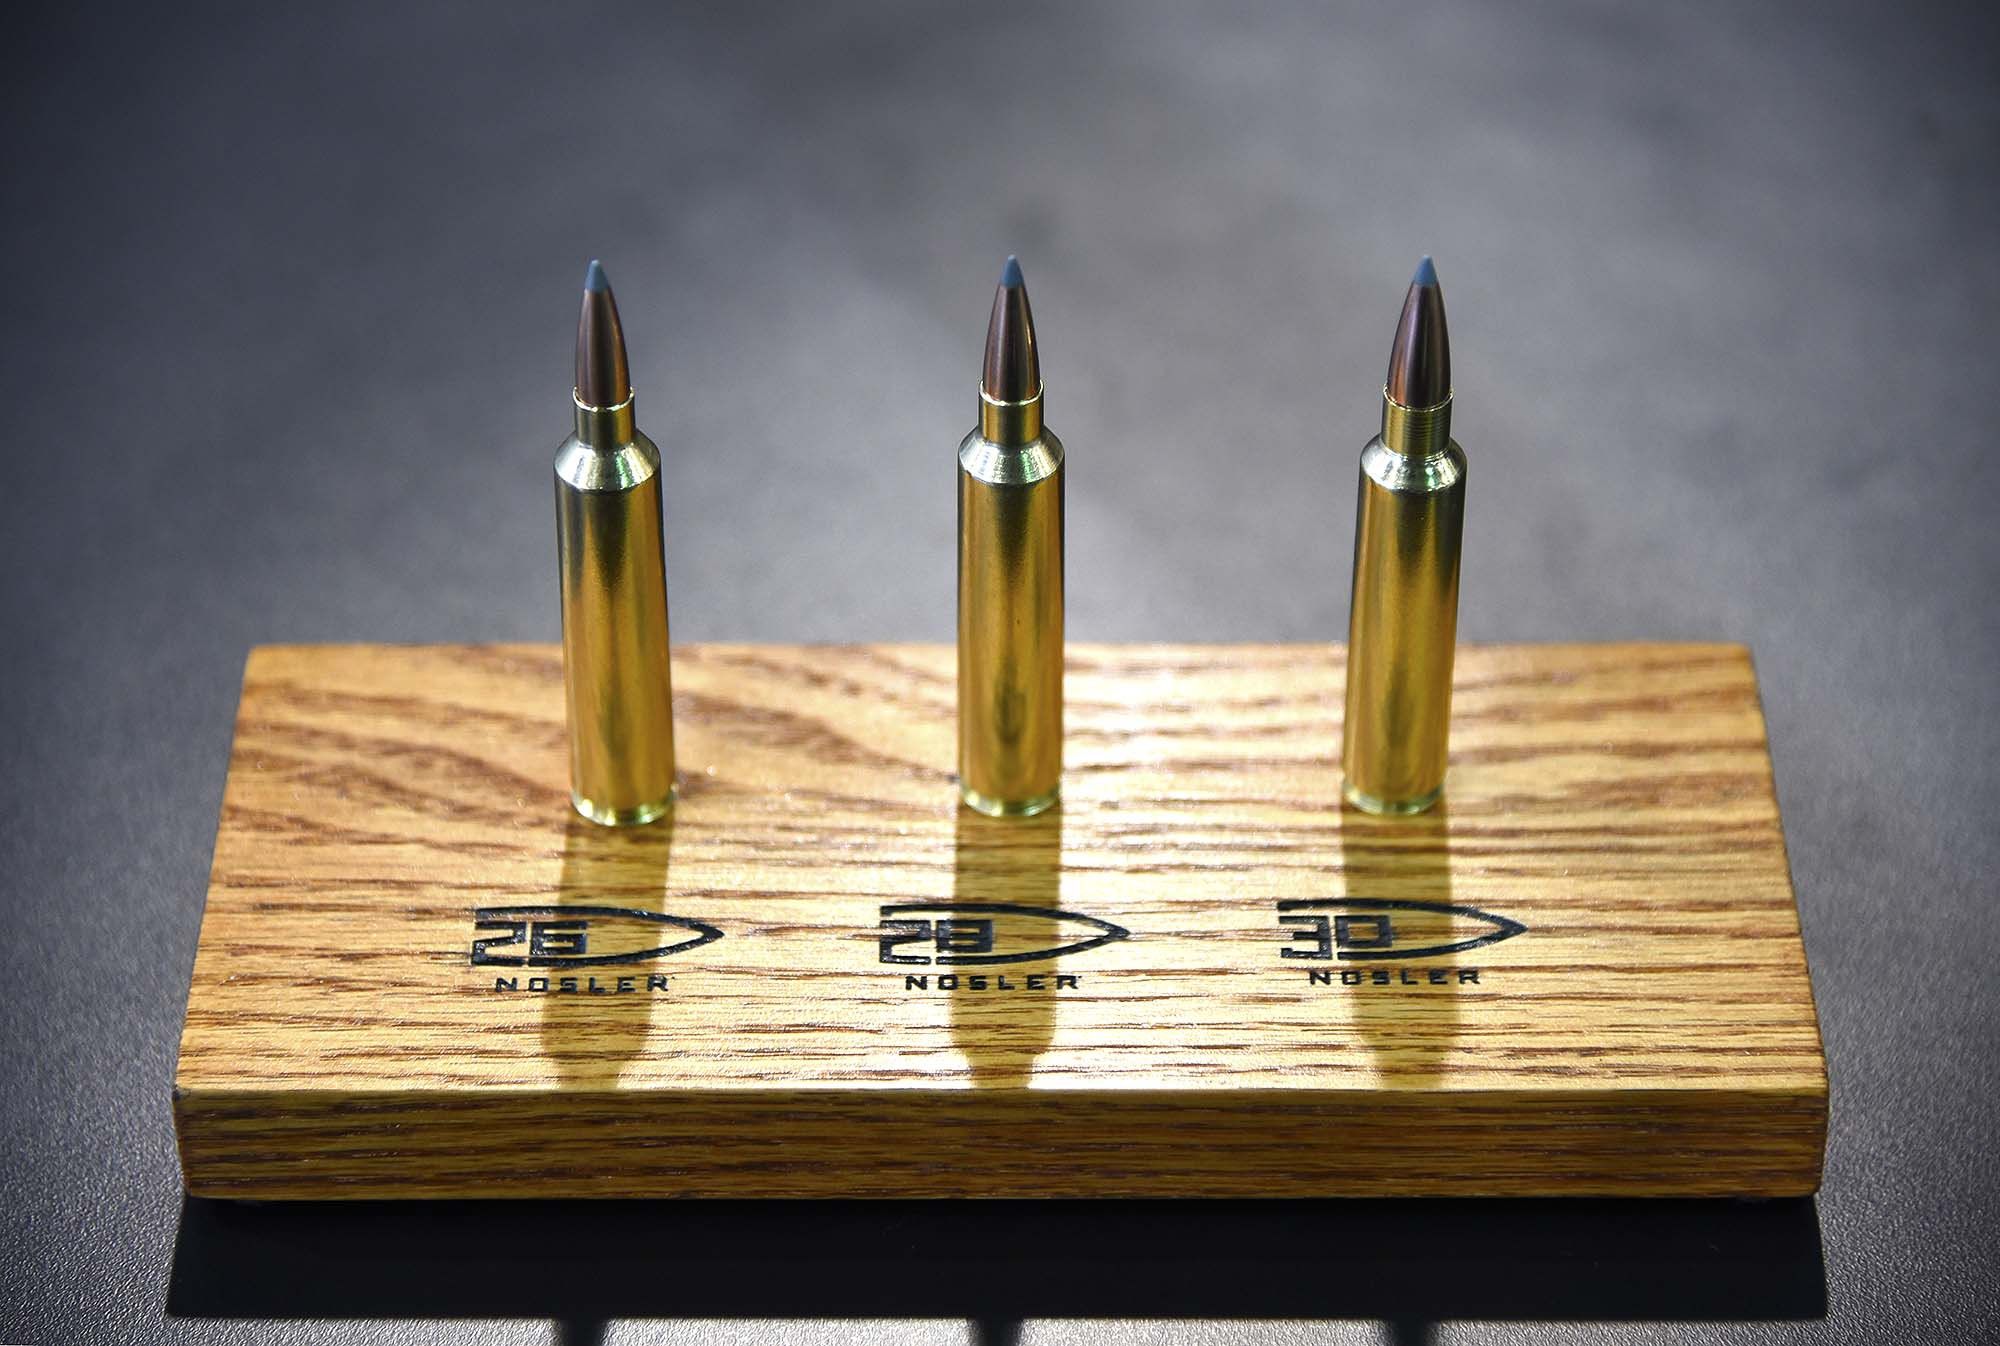 Shell Holder Chart: Nosler proprietary cartridges - Wikipedia,Chart